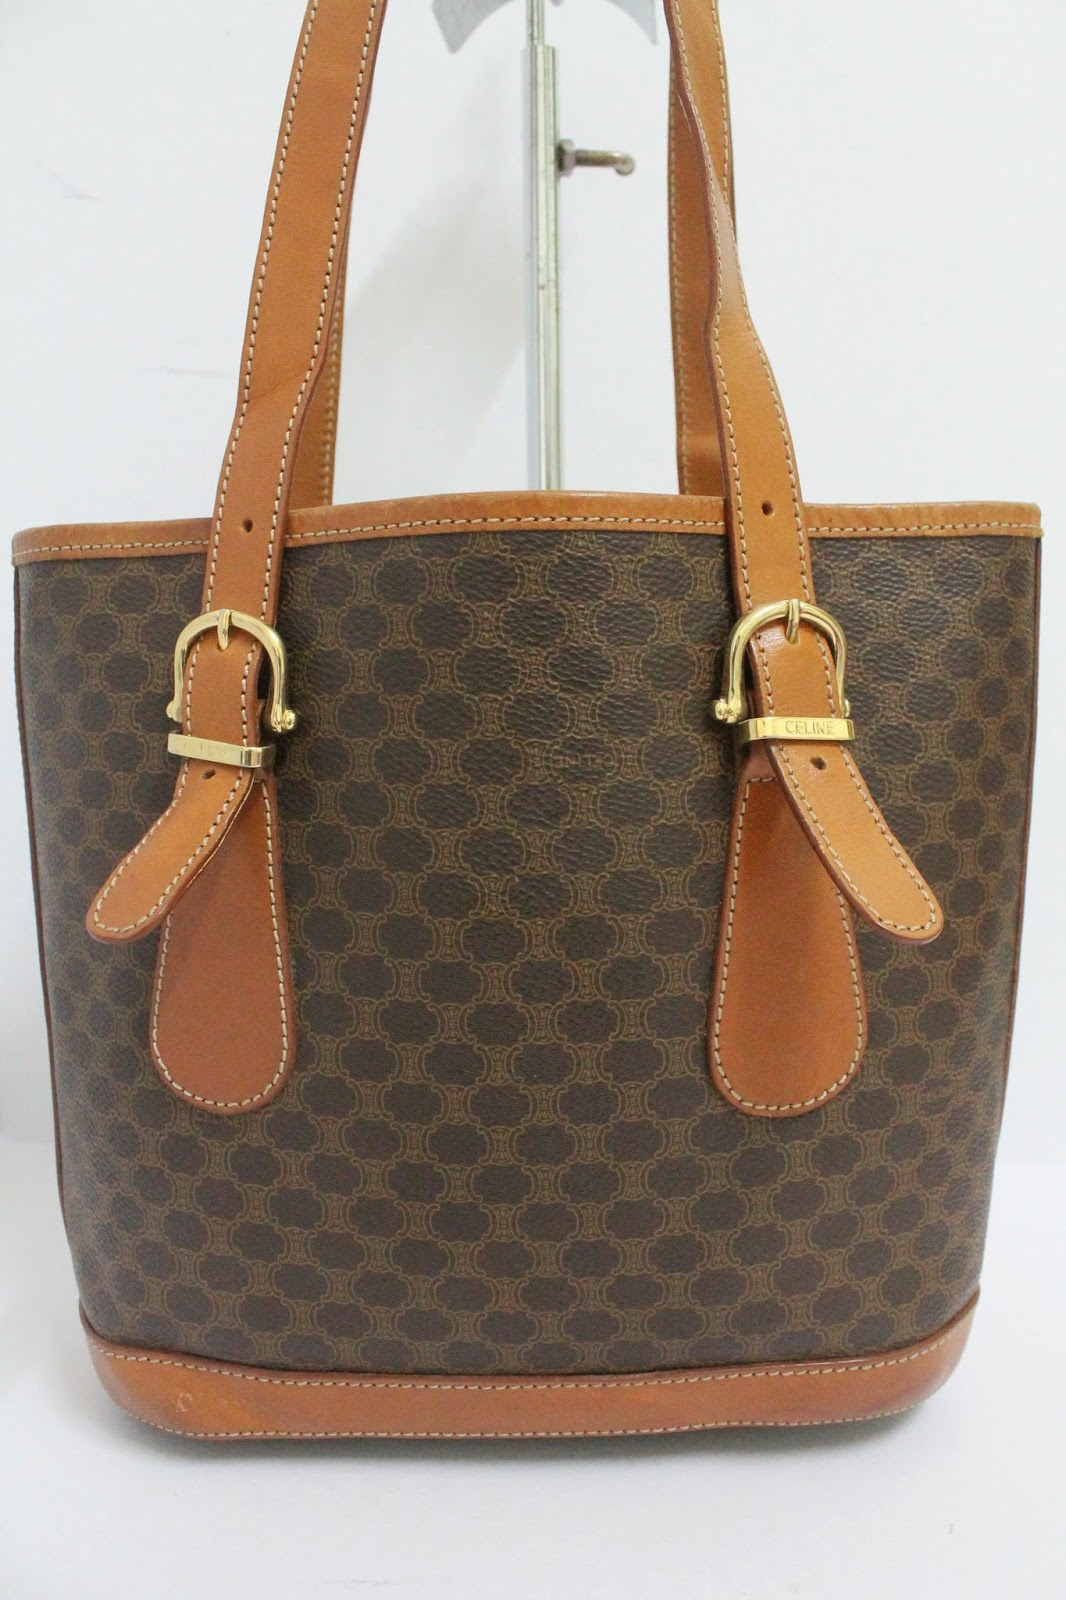 celine monogram leather bag